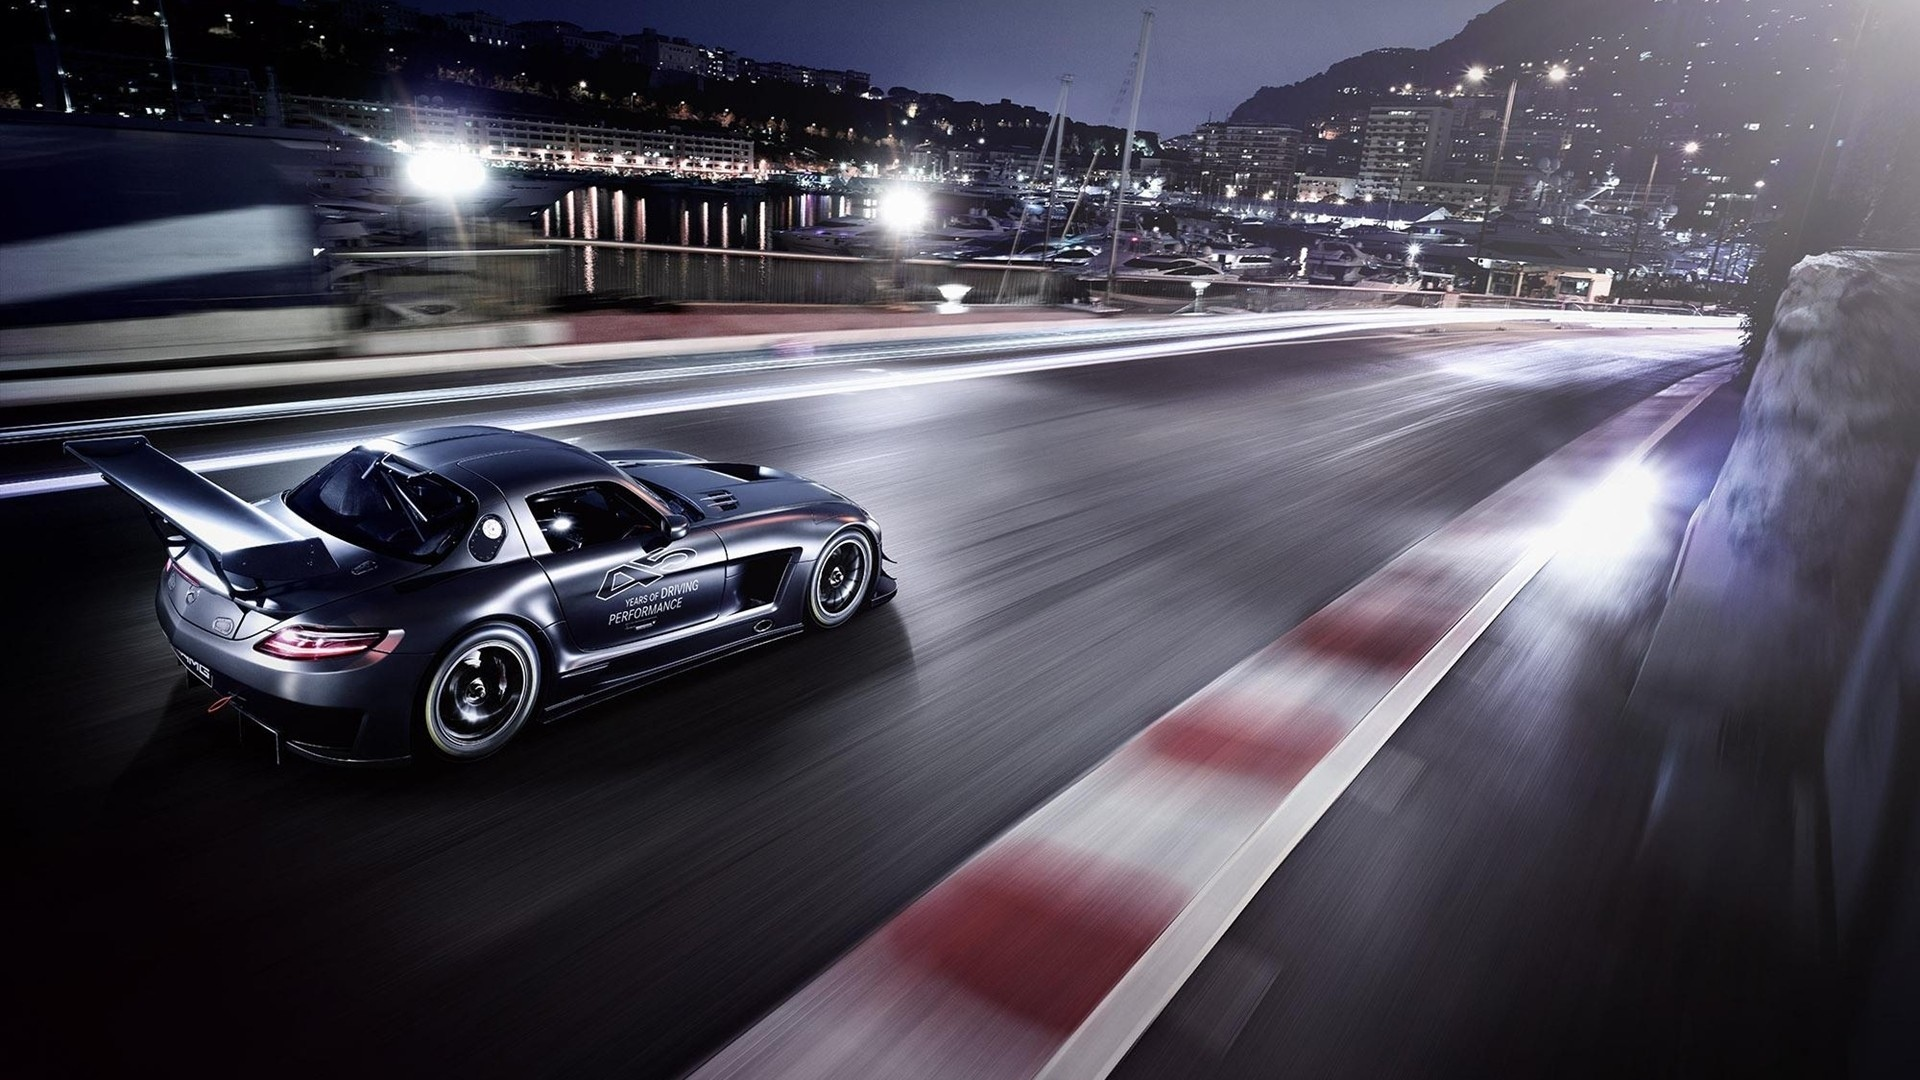 Mercedes Benz SLS AMG racing track race cars tuning crowd